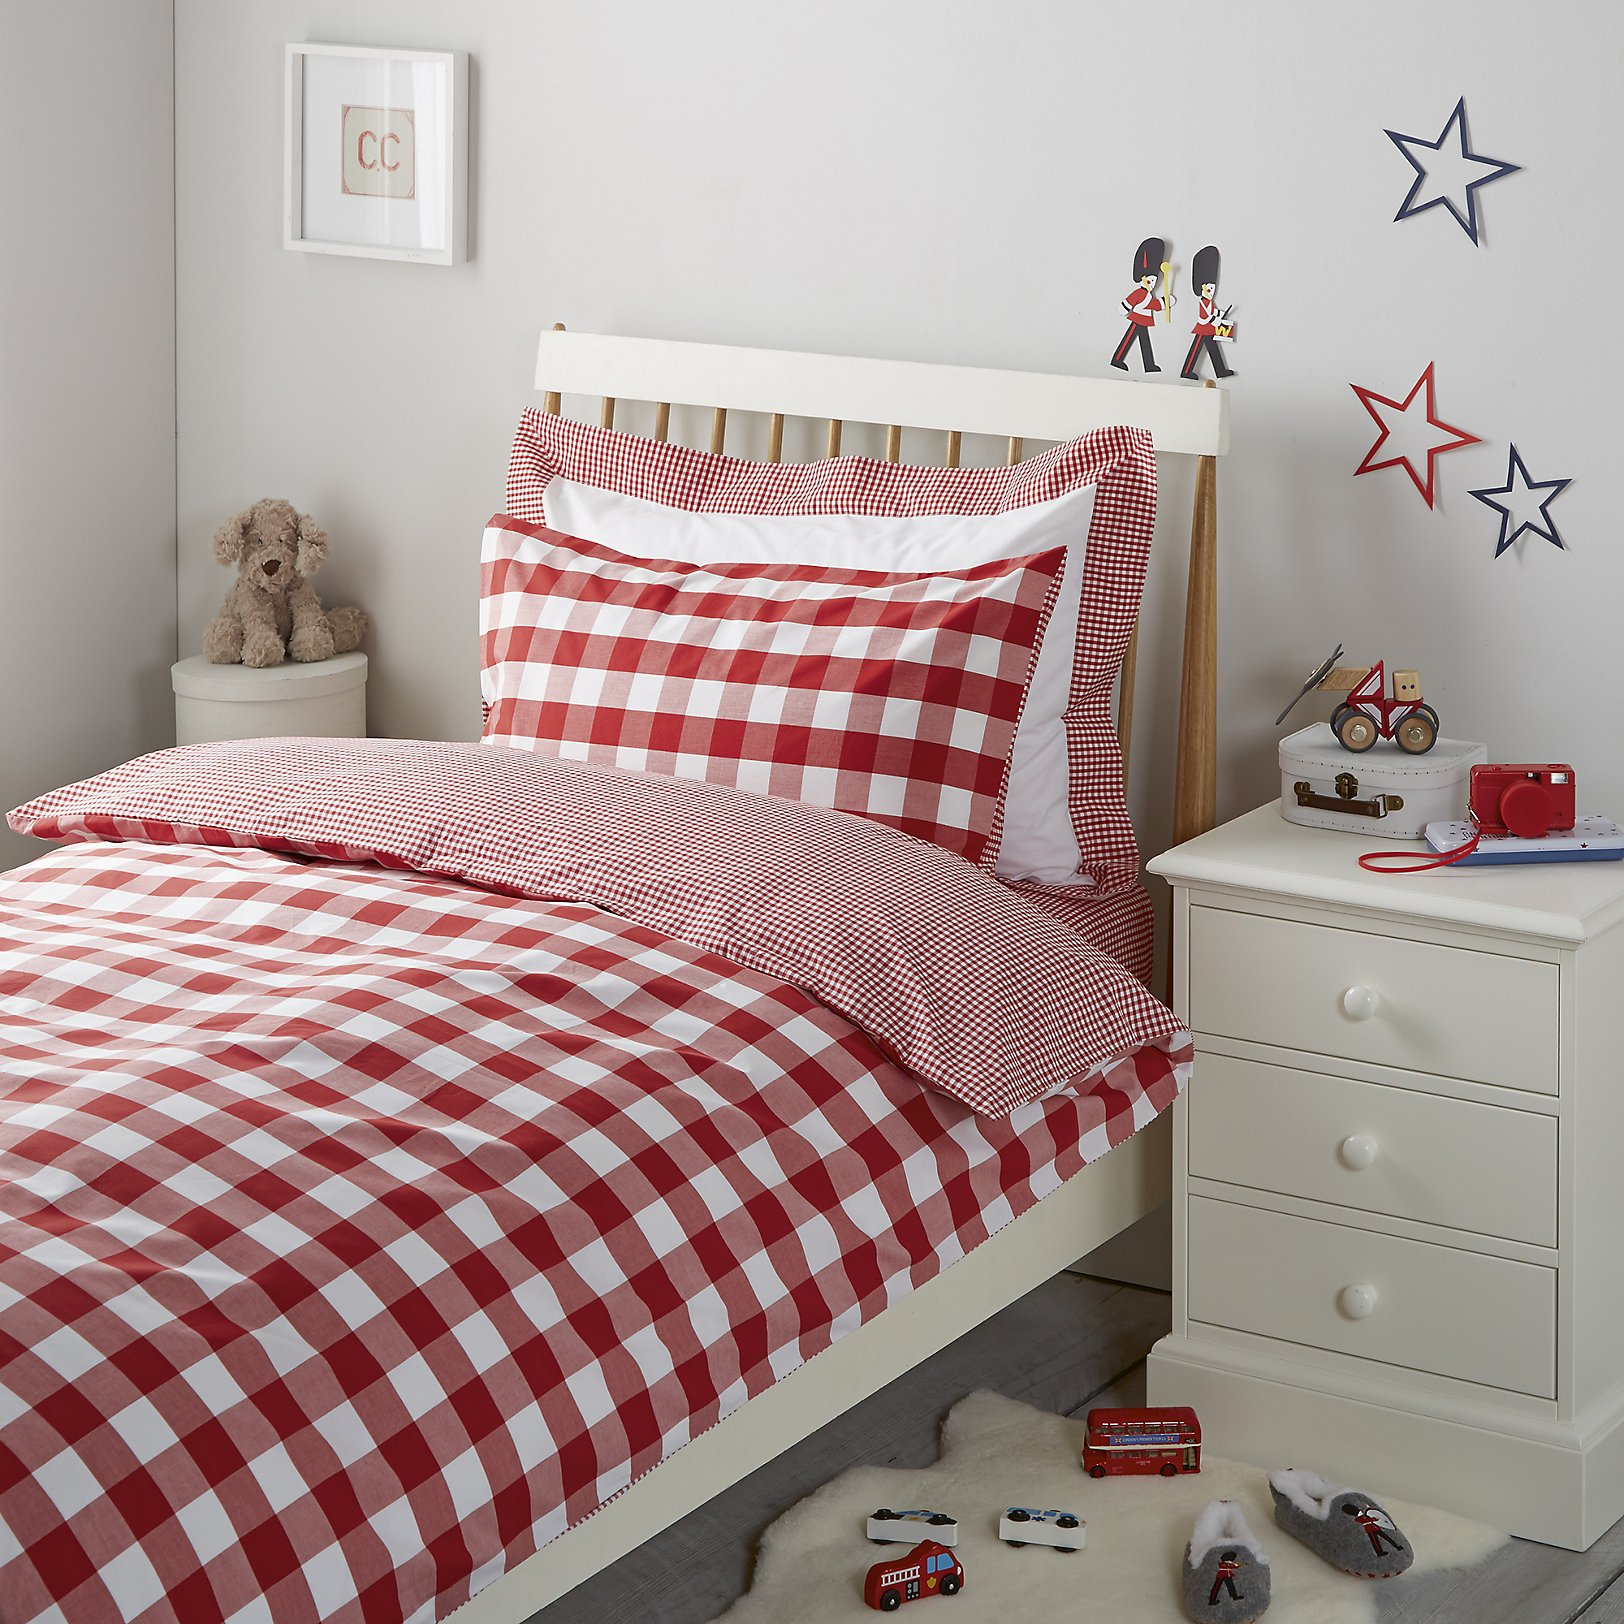 Red Gingham Duvet Cover - Sweetgalas : red gingham quilt - Adamdwight.com